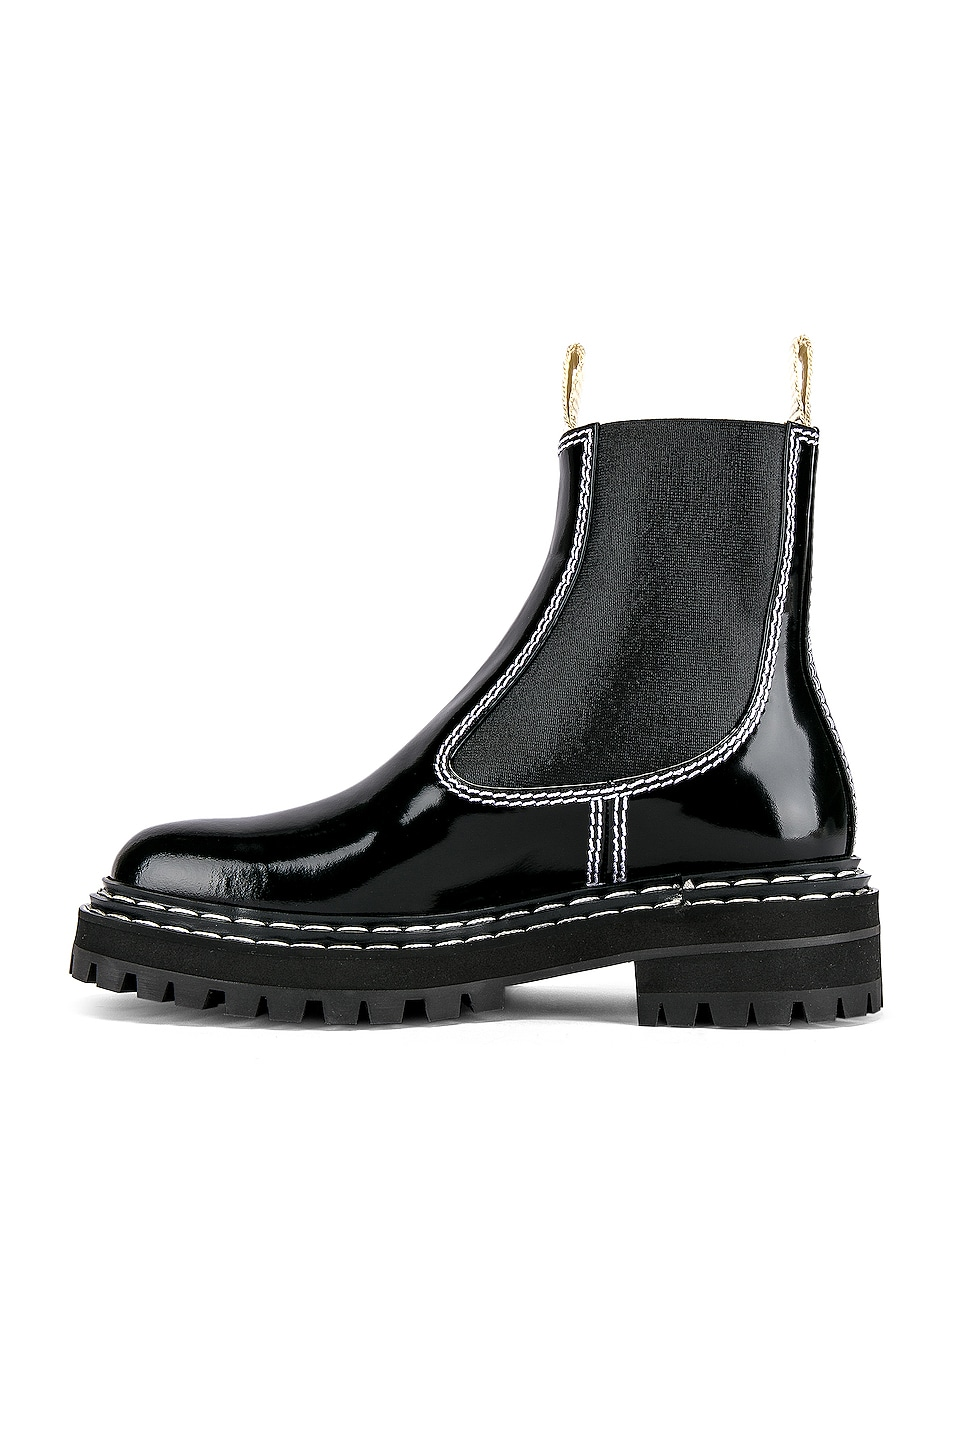 Image 5 of Proenza Schouler Ankle Boots in Black